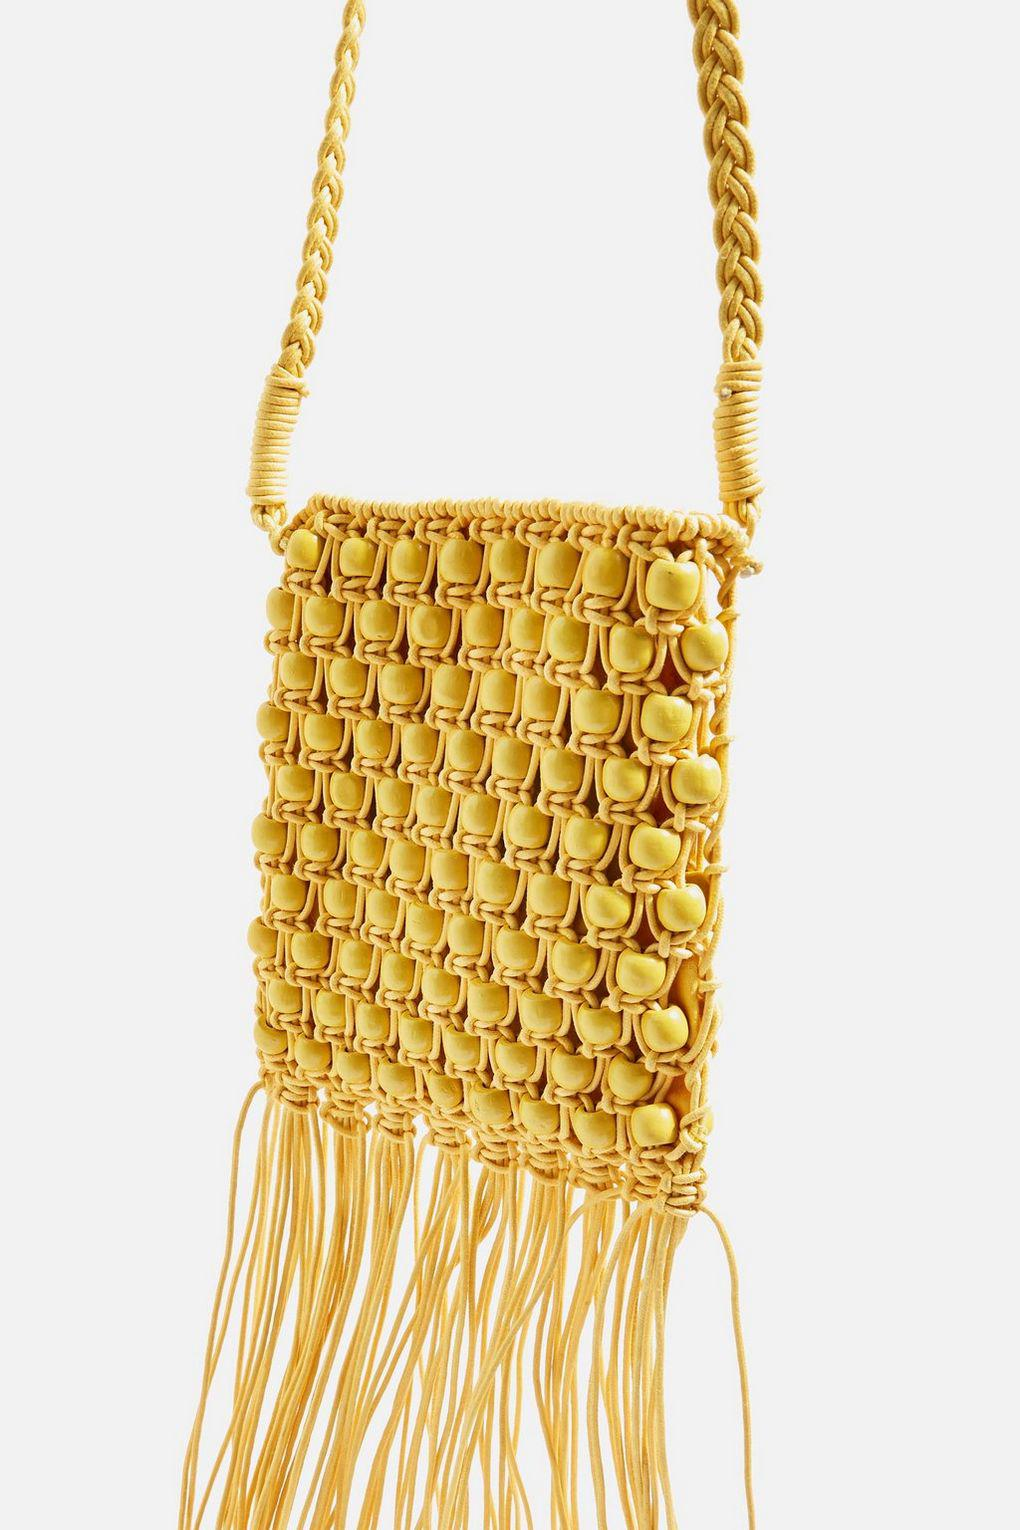 TOPSHOP Cotton Beaded Fringe Cross Body Bag in Yellow